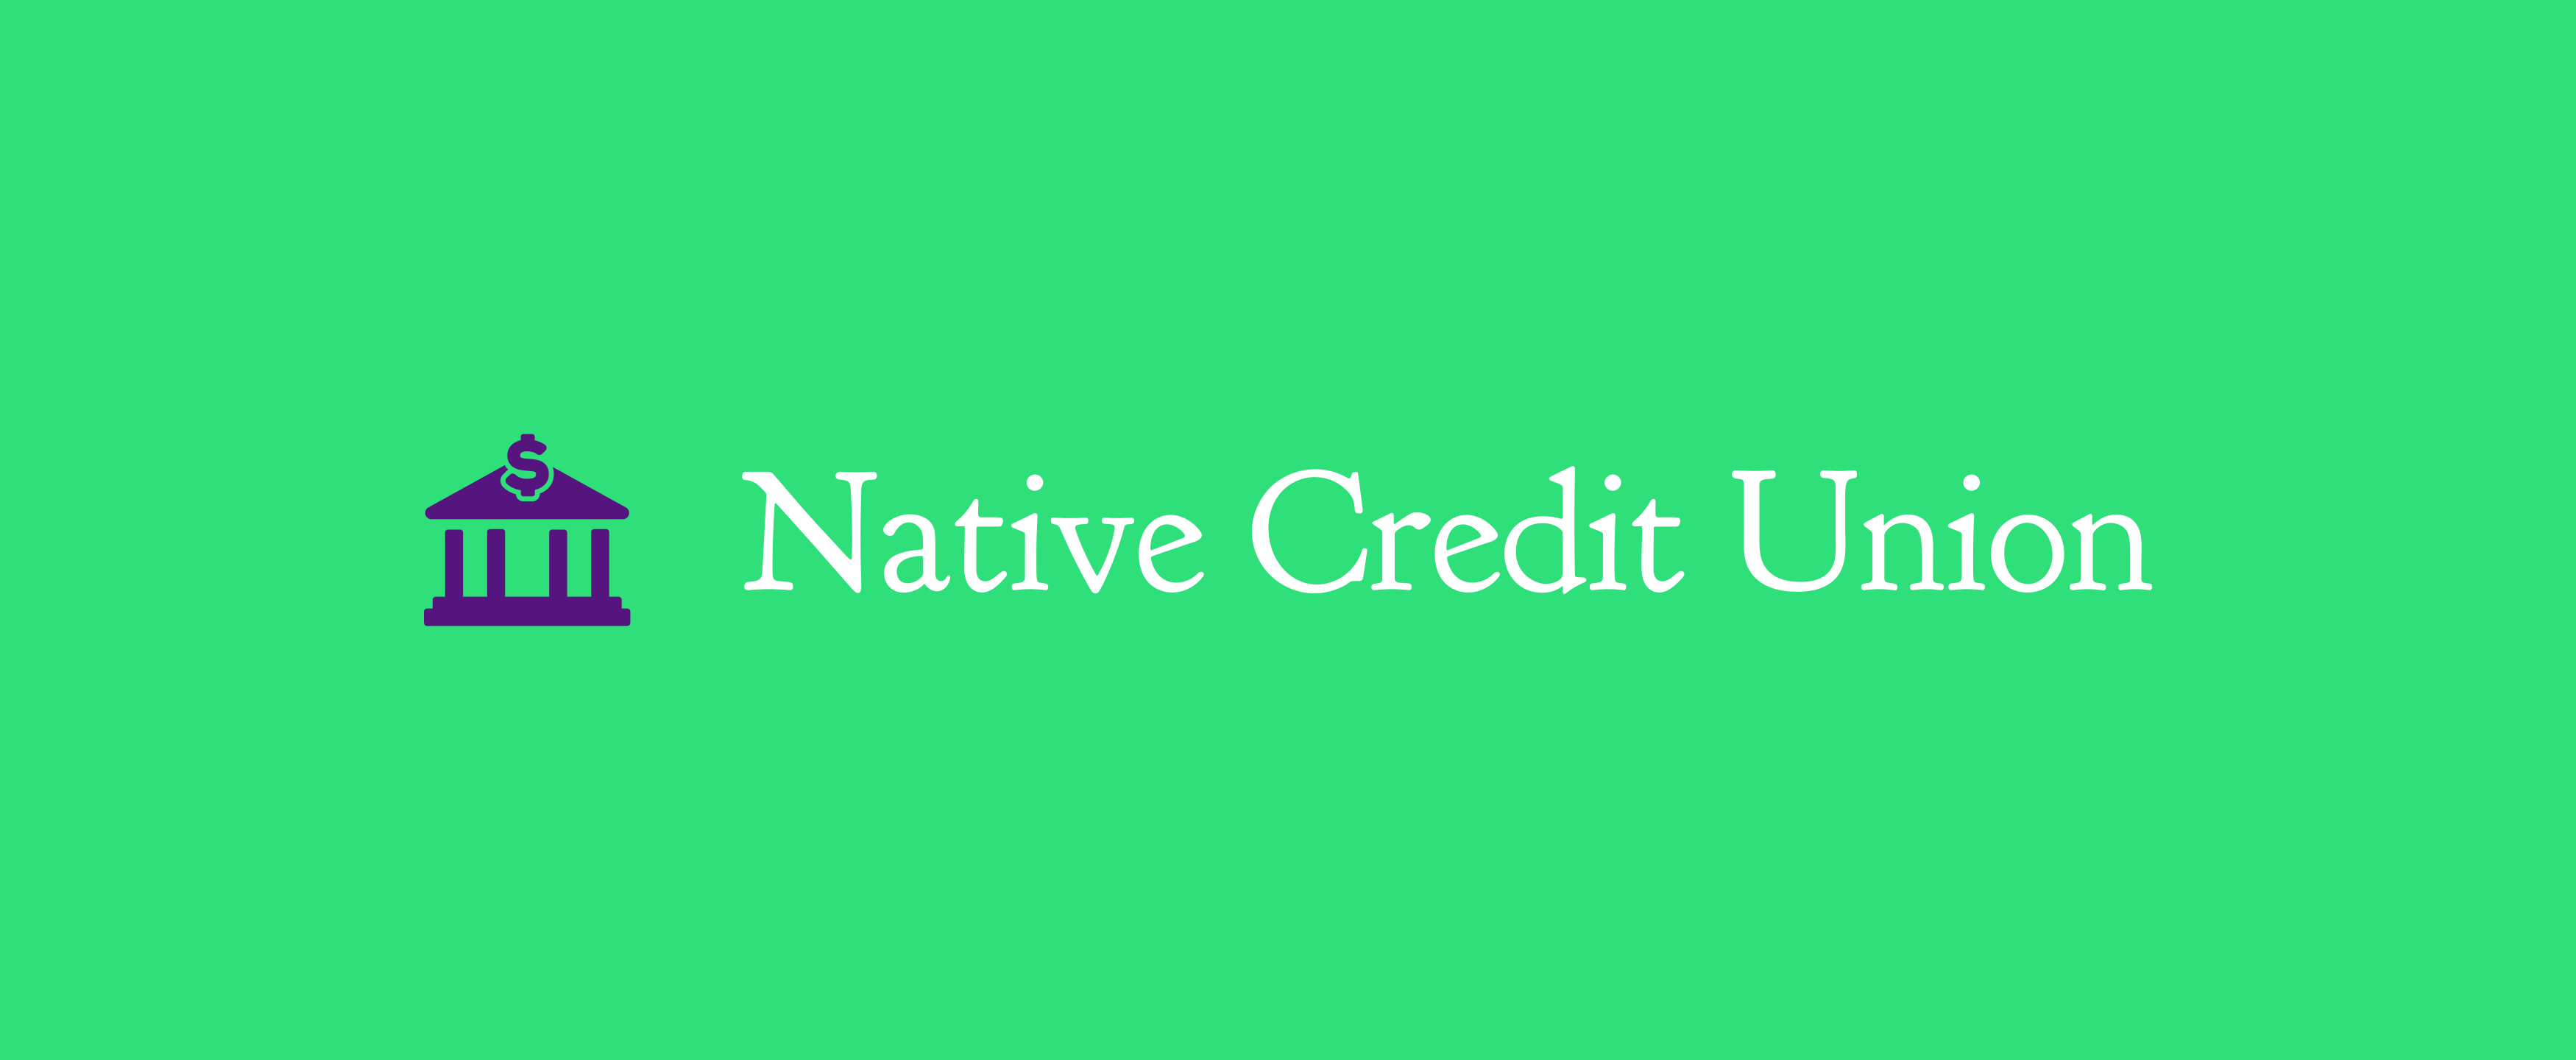 nativecreditunion